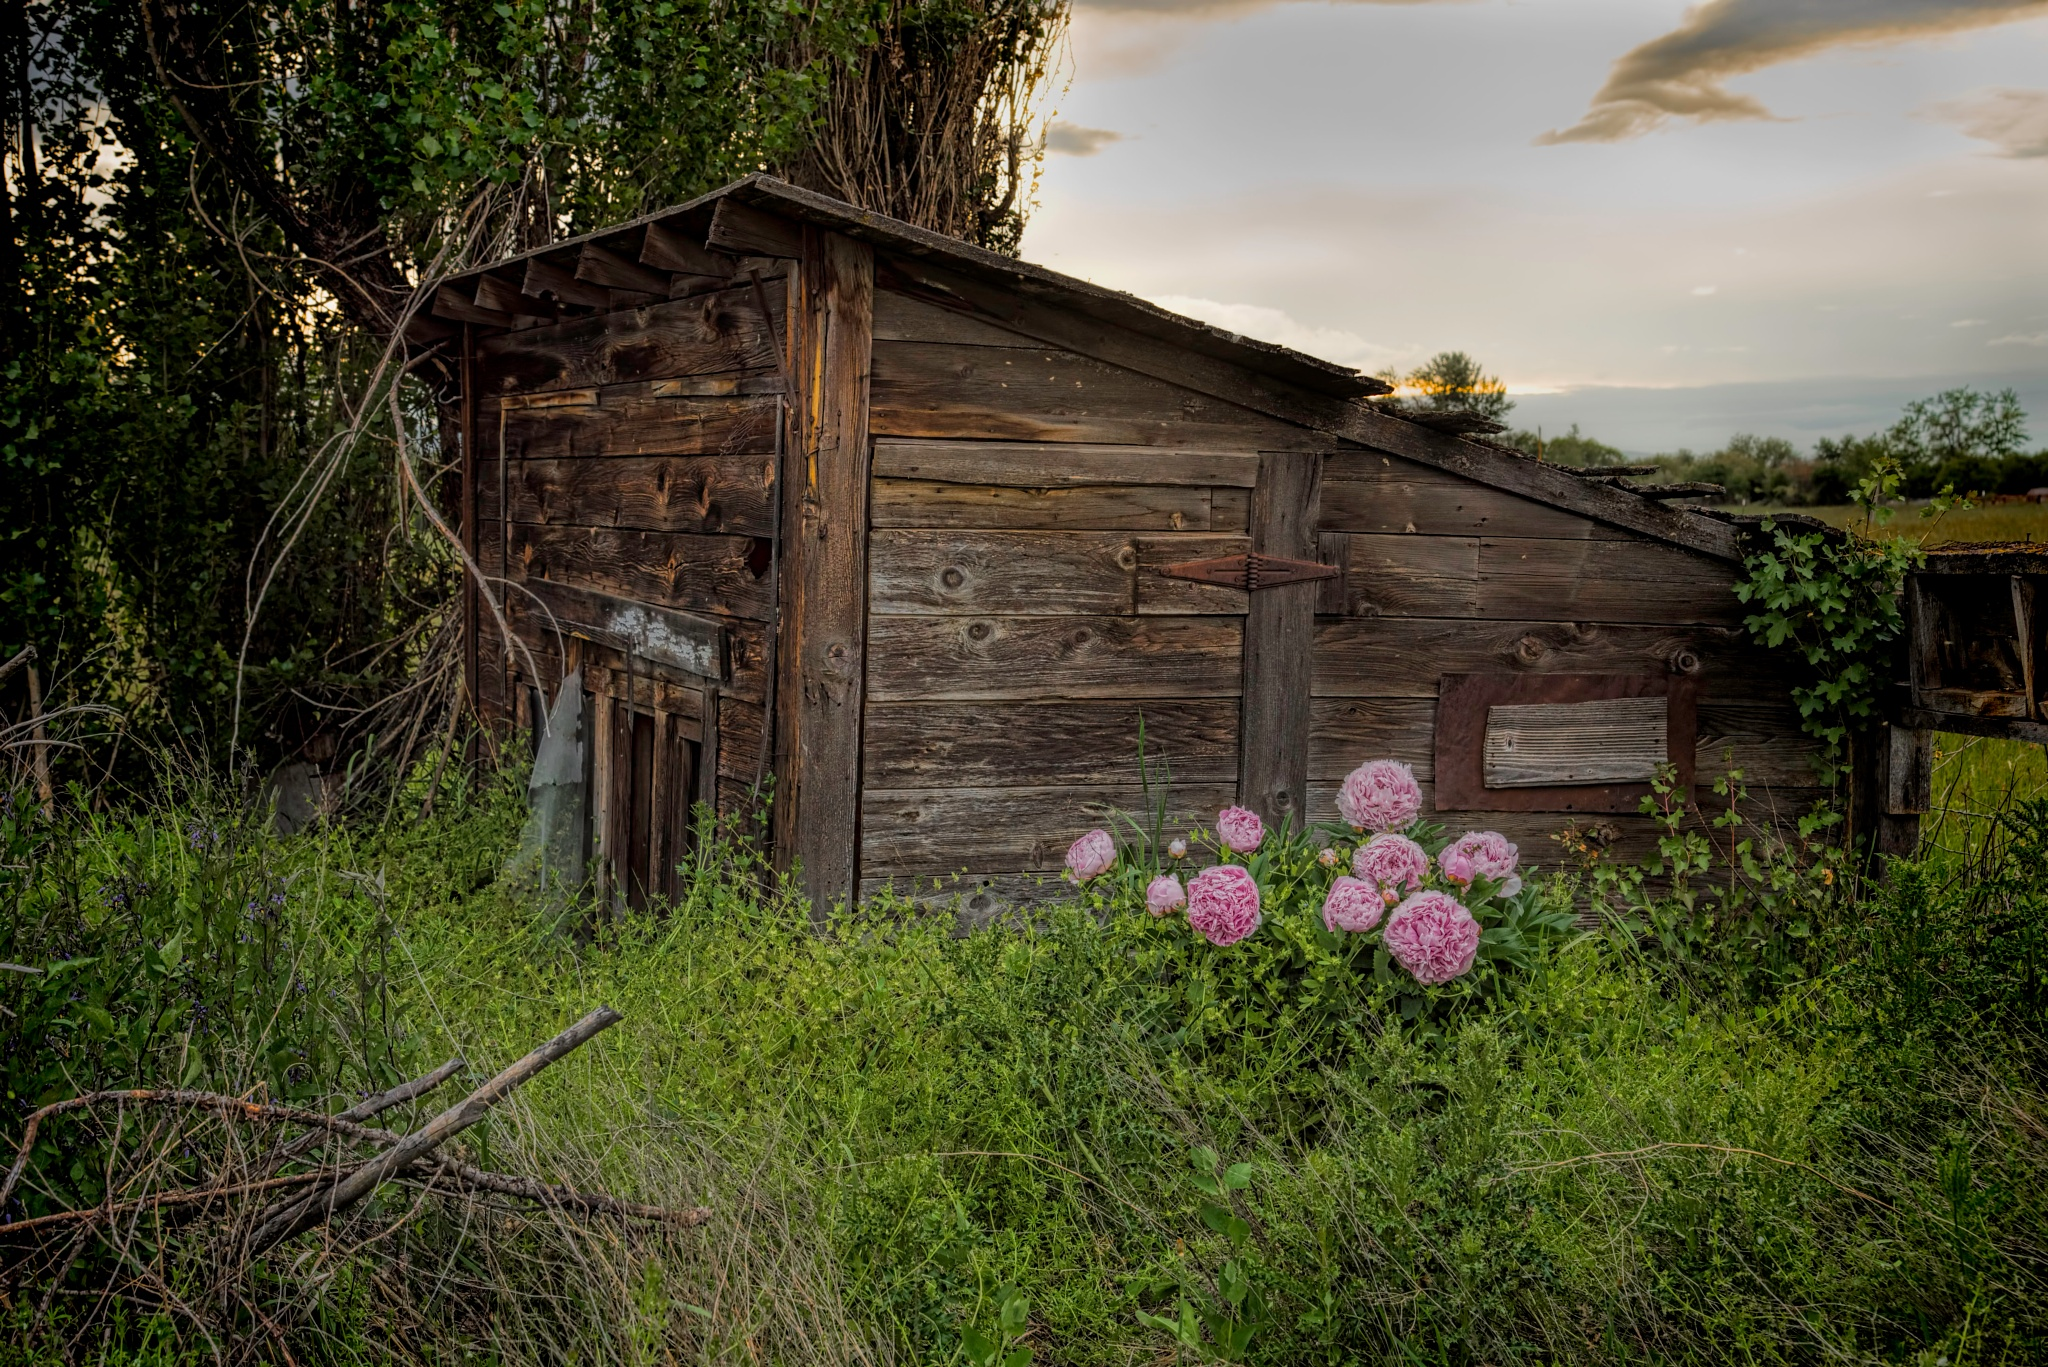 Abandoned Farm Buiding by Mike Adams